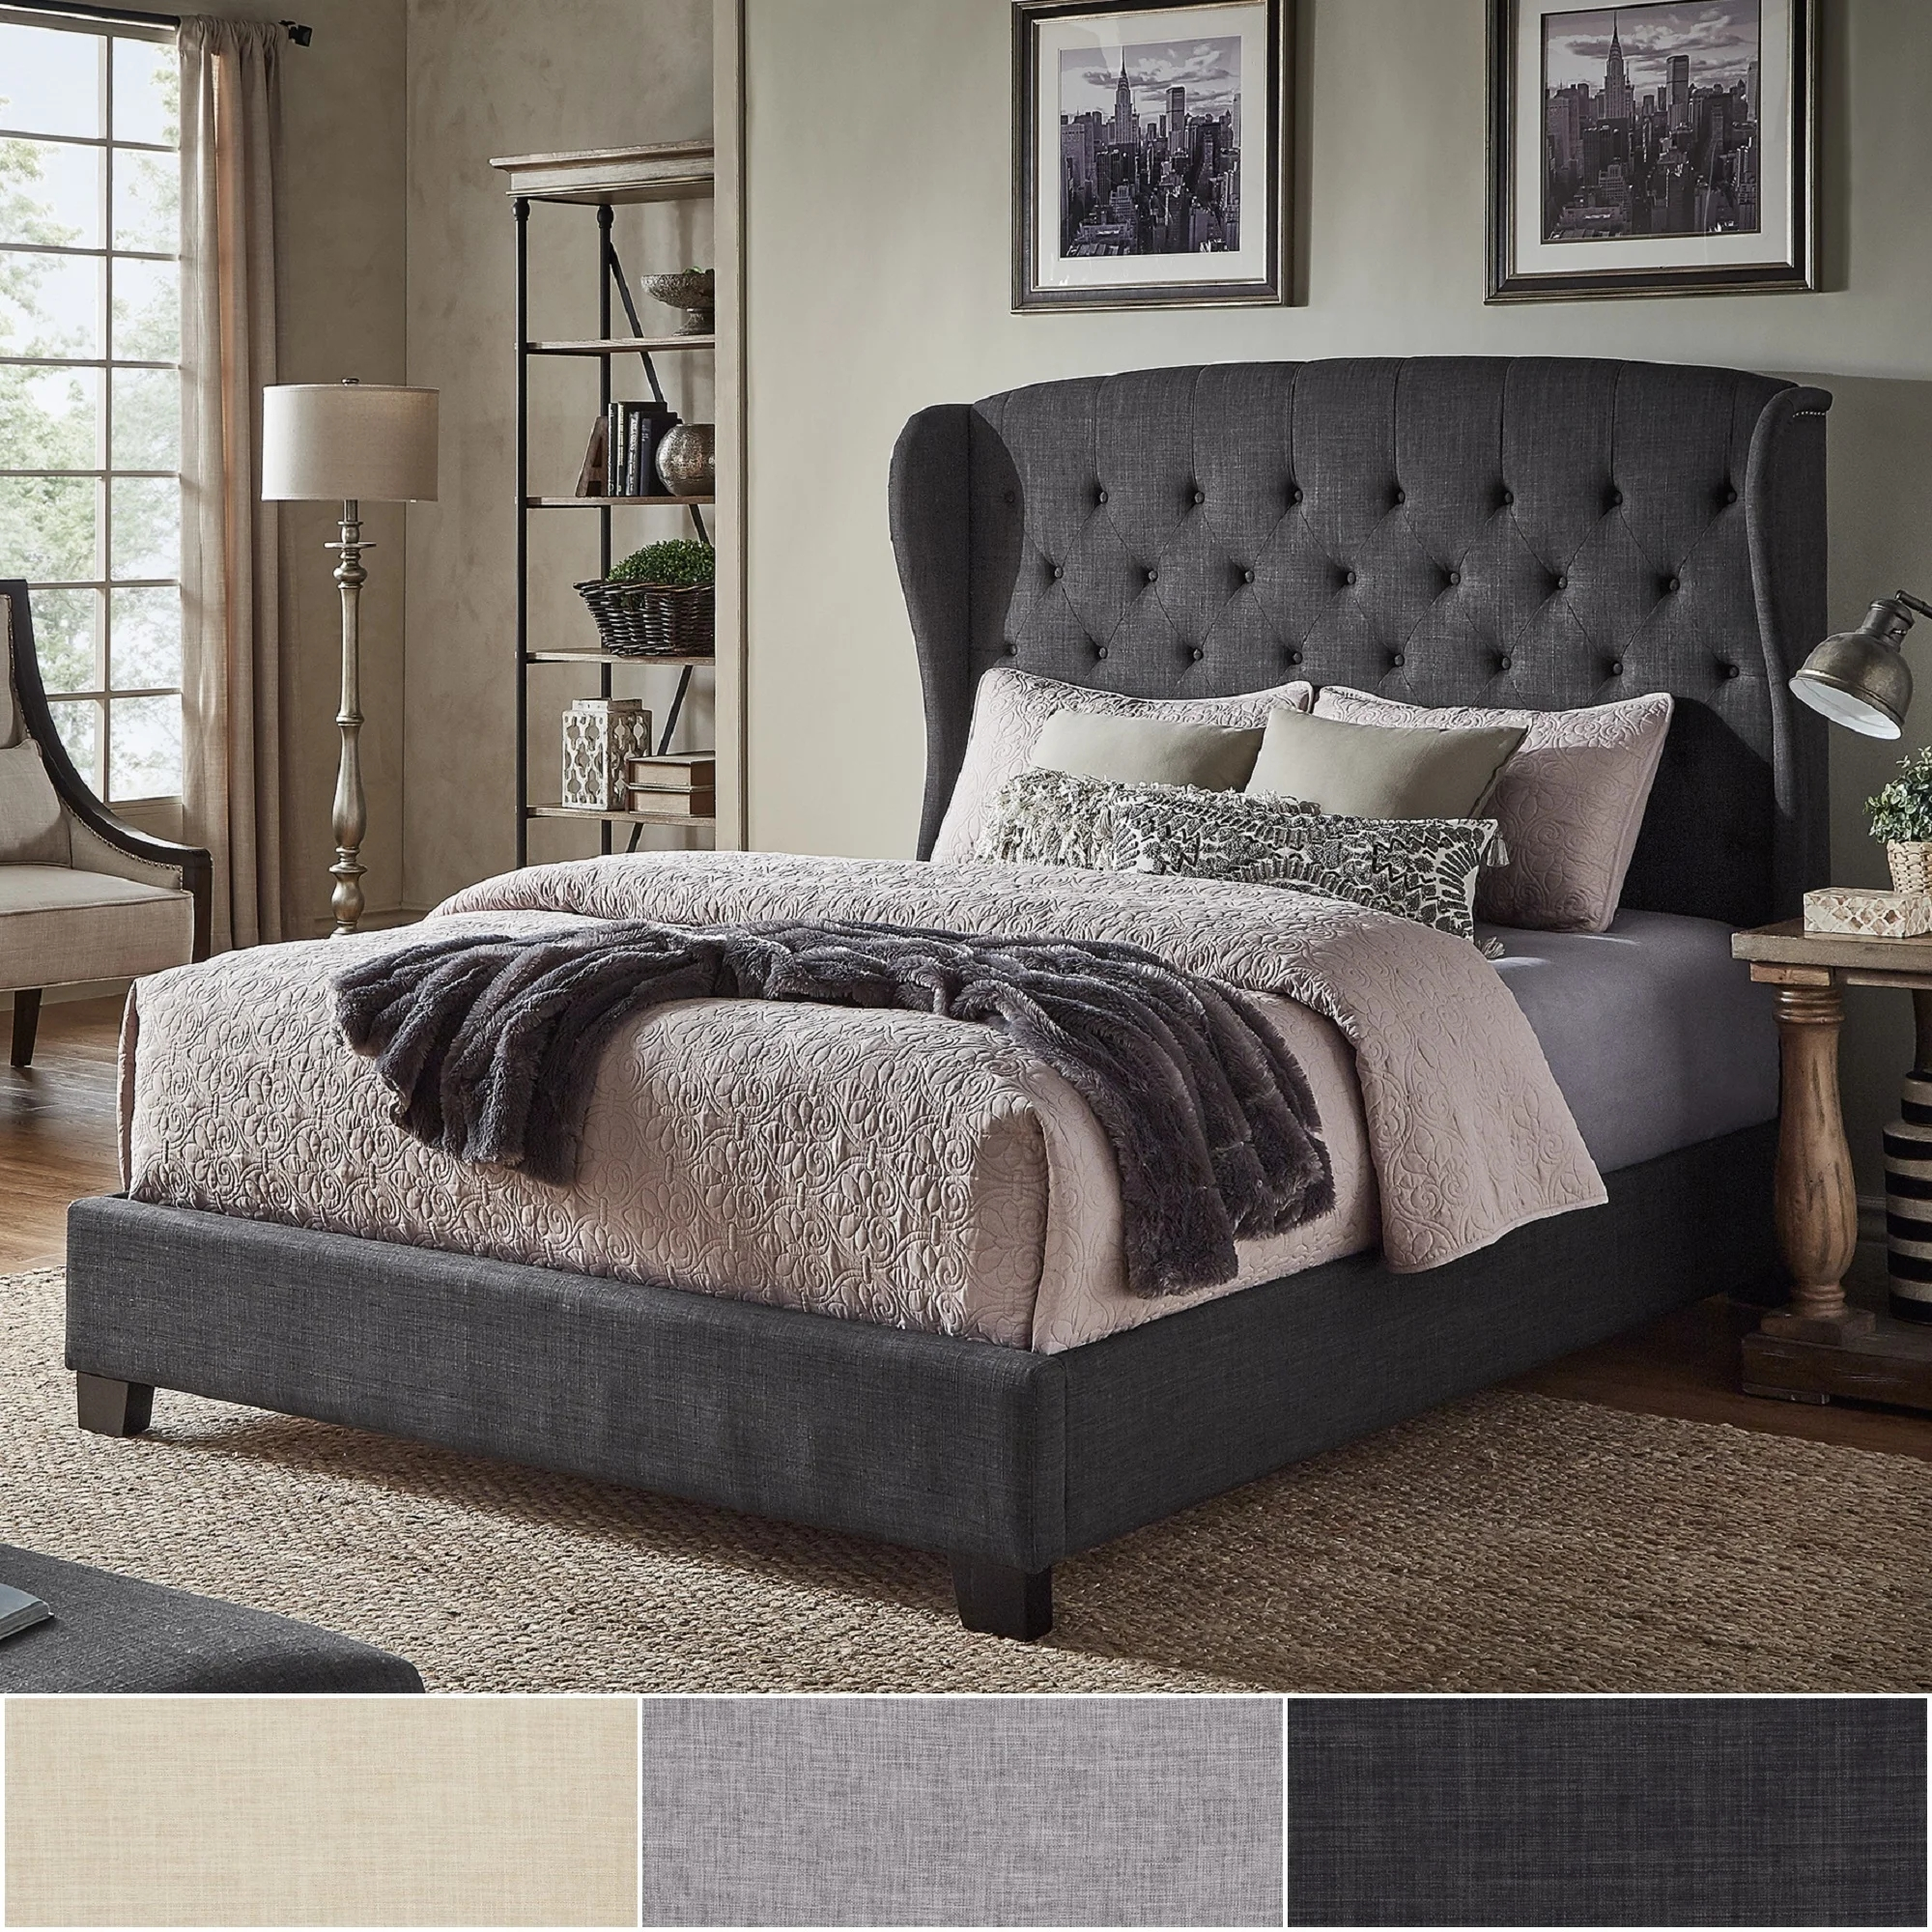 Modern Tufted Linen Fabric French Luxury Bed with Nailhead Trim